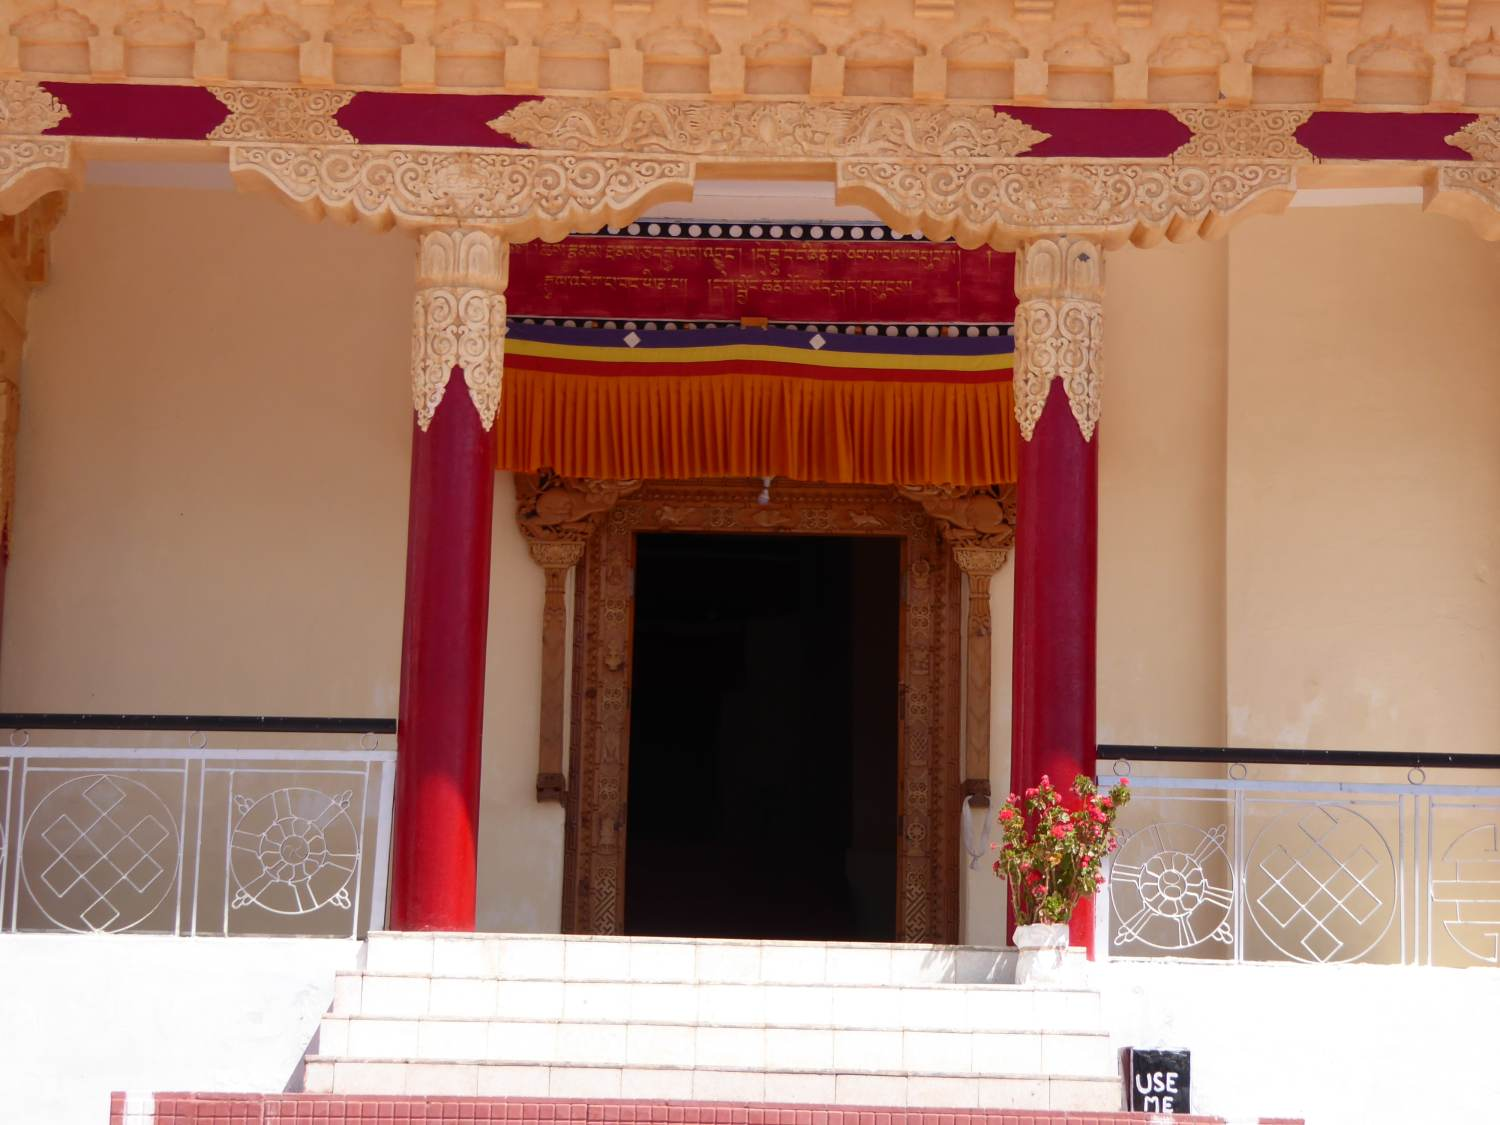 One of the entrances to the interior